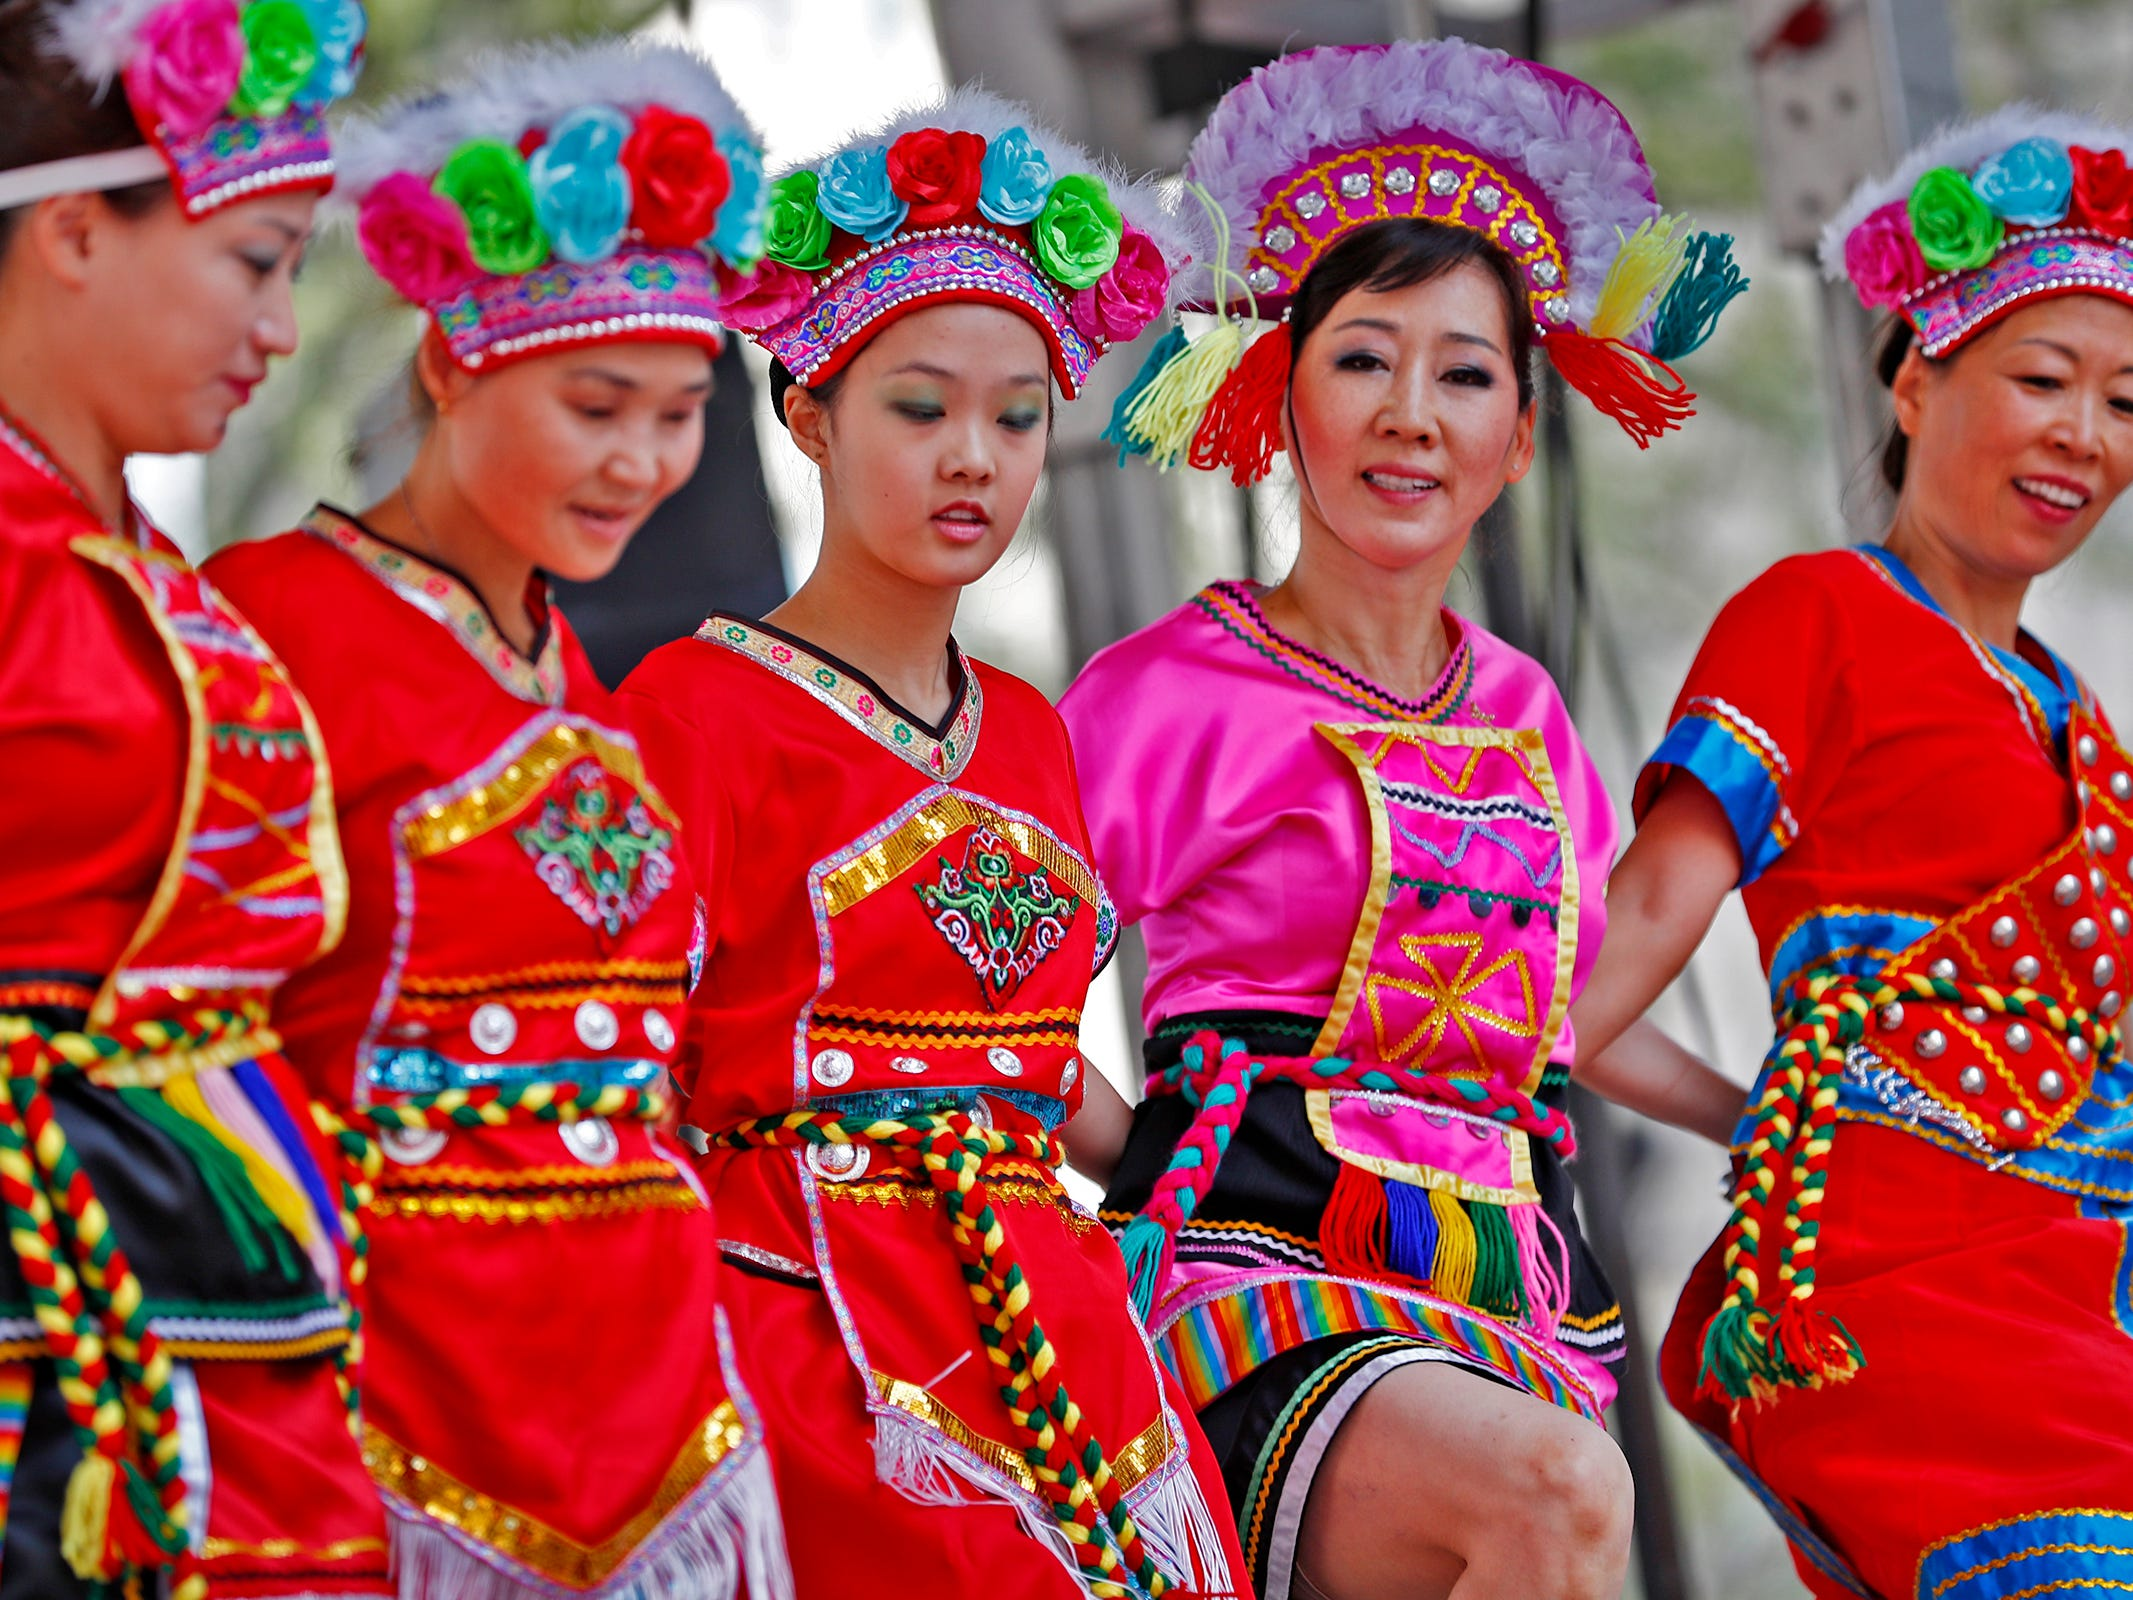 Singers, musicians and dancers from a variety of cultures, including these dancers from the Indianapolis Chinese Performing Arts, Inc., performed during the YMCA World Fest, on Monument Circle, Thursday, Sept. 13, 2018. YMCA of Greater Indianapolis hosts the free event that celebrates cultures including international food vendors, music, sports, and performers.